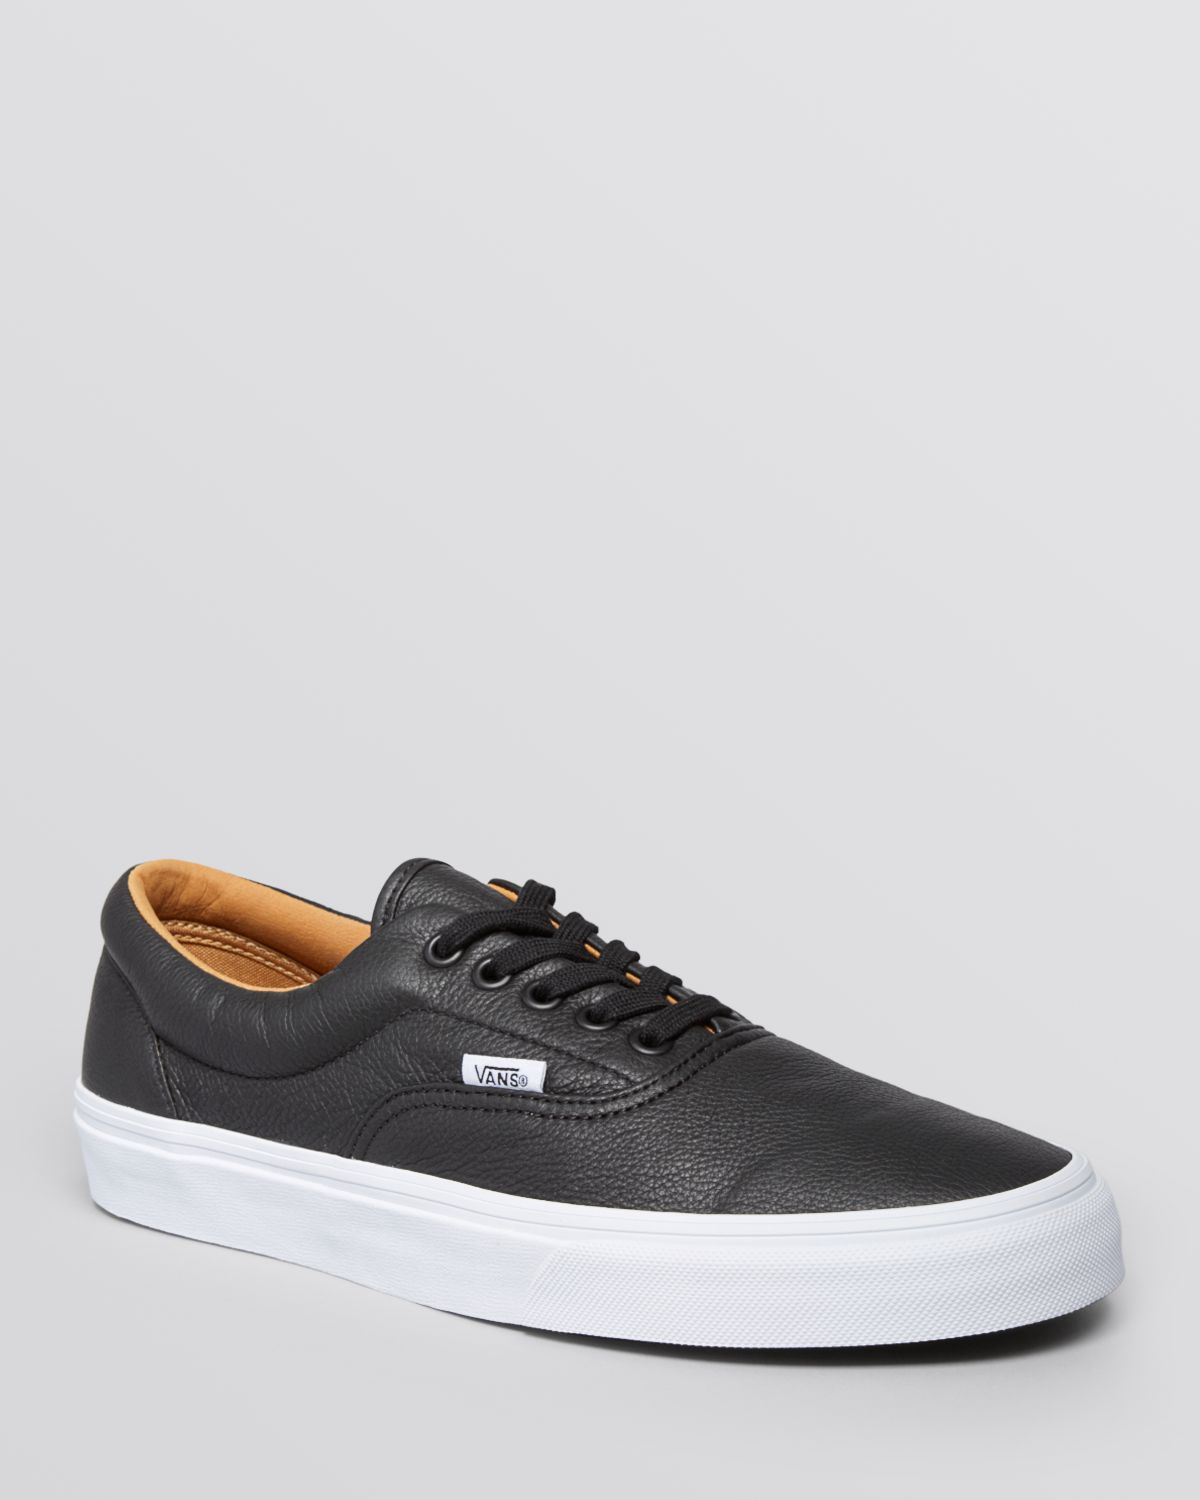 f663258ce6d Lyst - Vans Era Premium Leather Lace-Up Sneakers in Black for Men